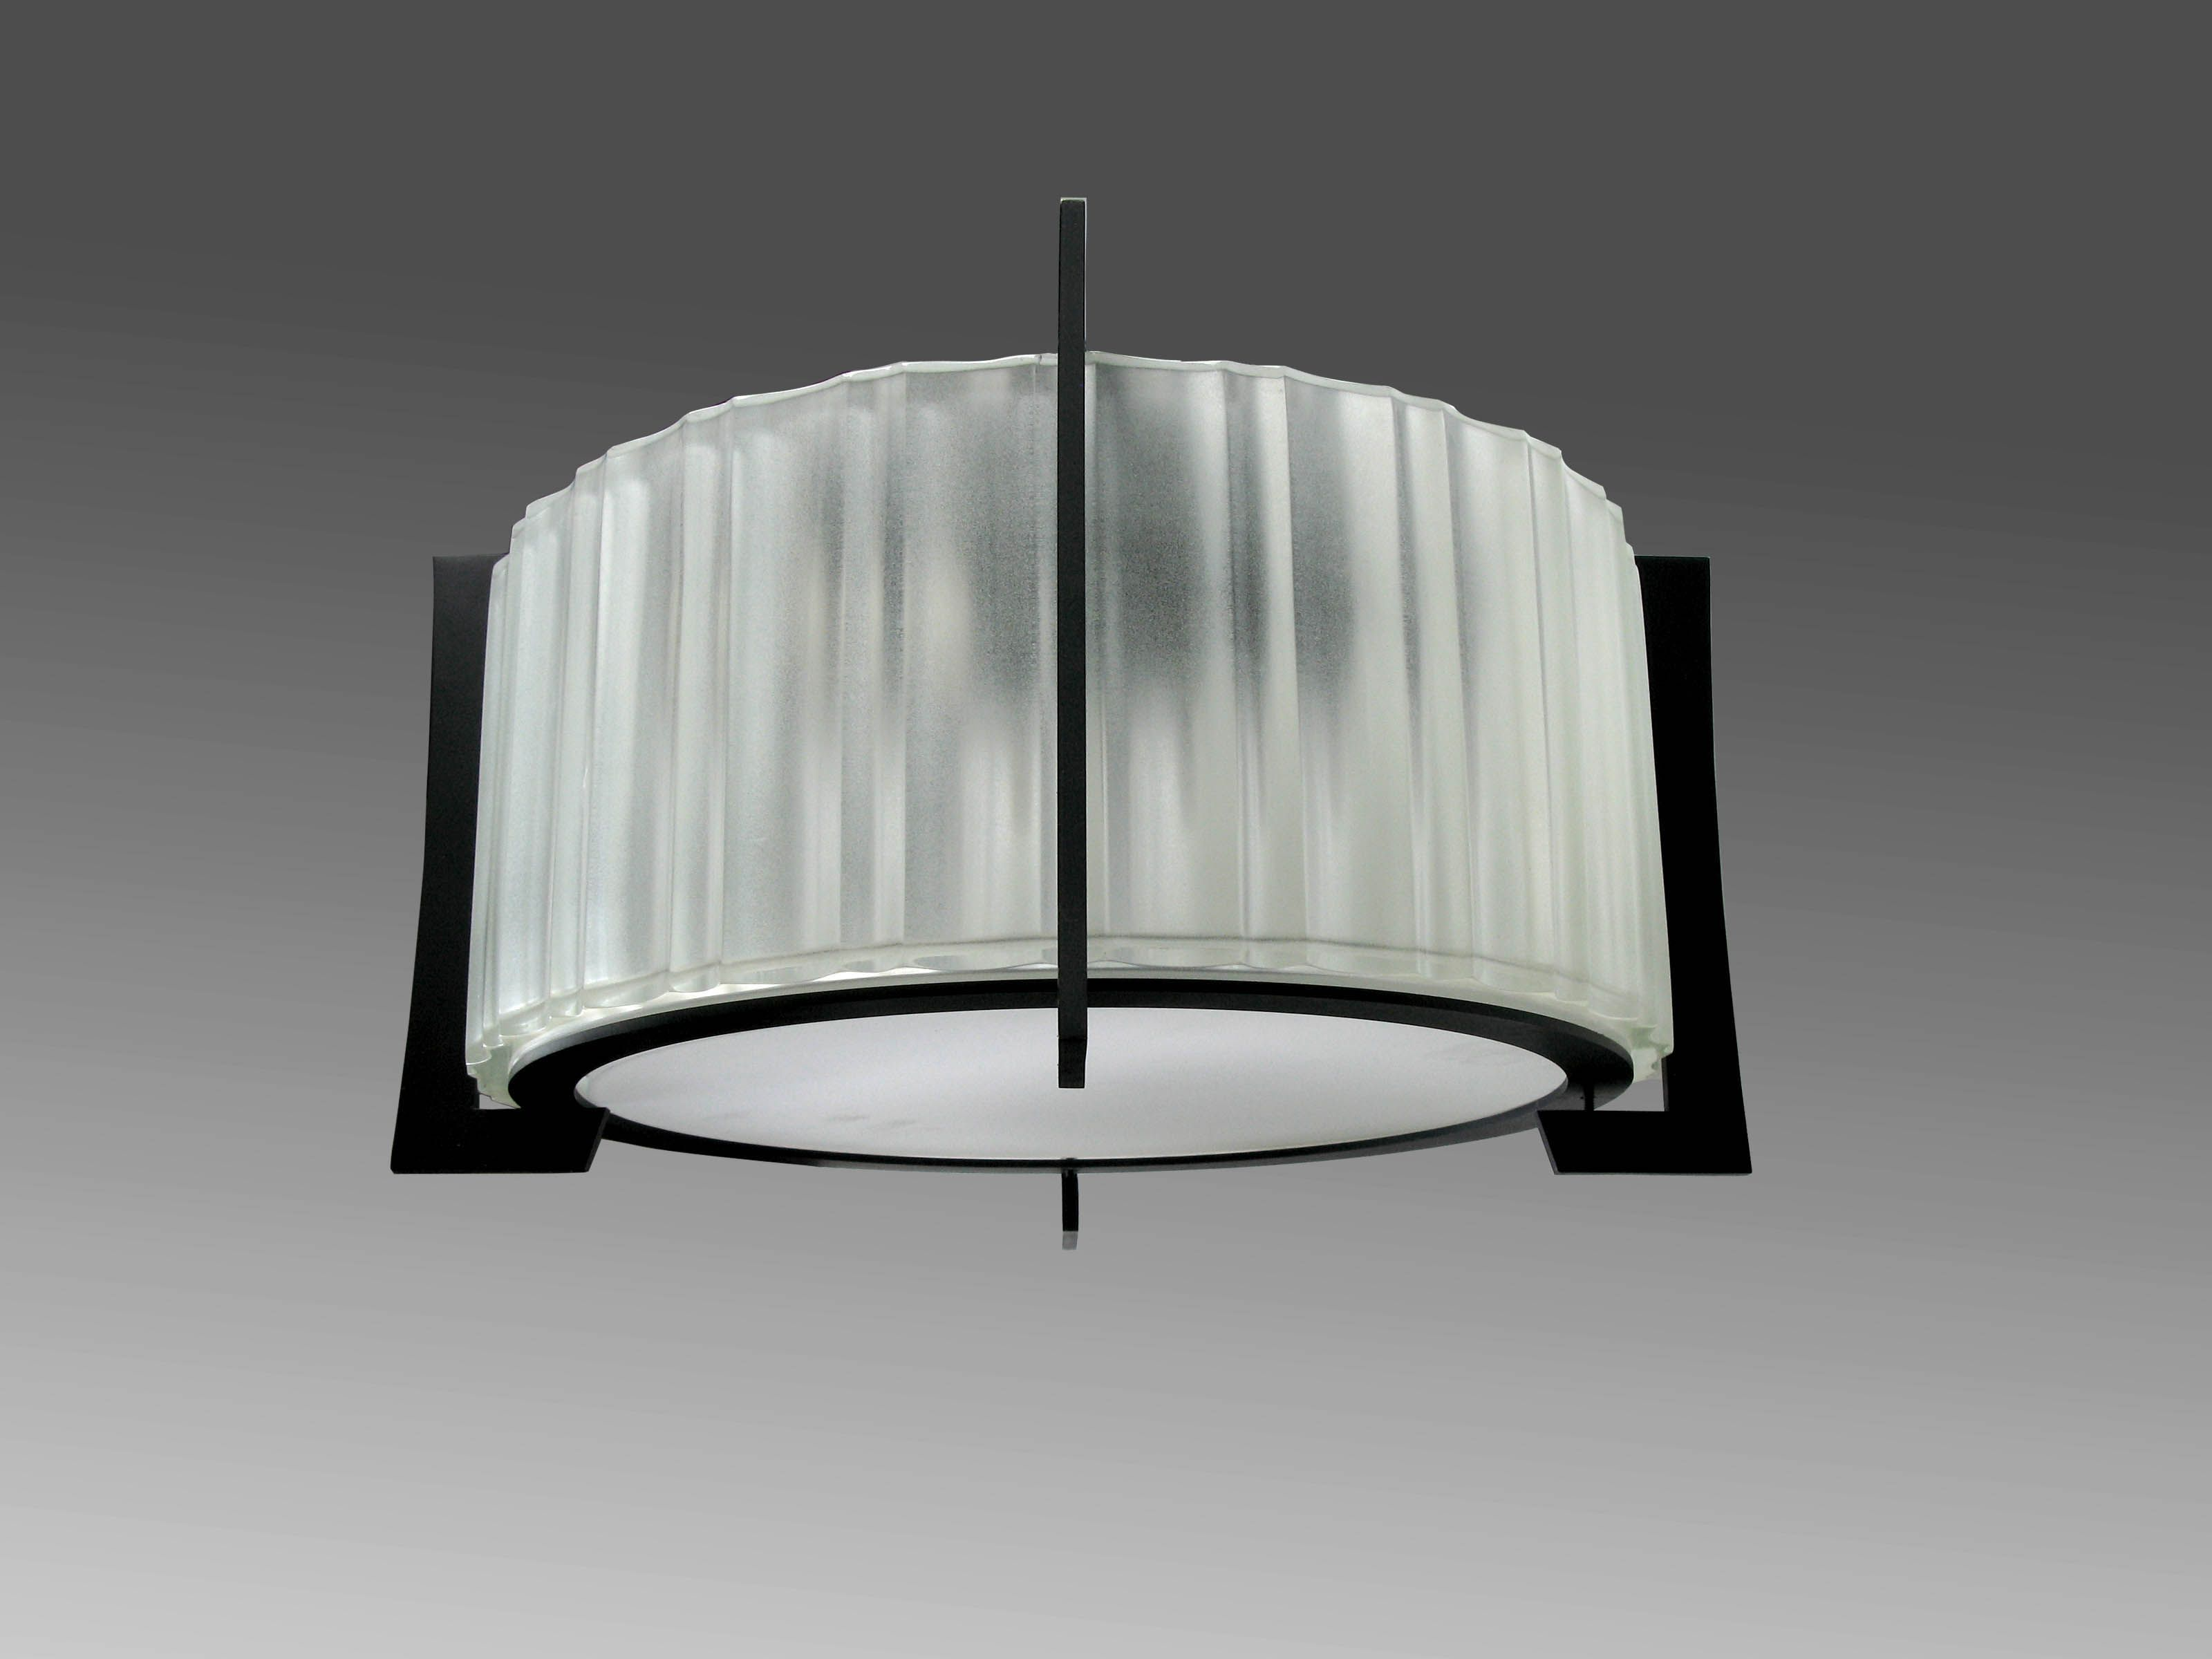 HB Architectural Lighting by Howard Baldinger - Wall Sconce & HB Architectural Lighting by Howard Baldinger - Wall Sconce | Art ...